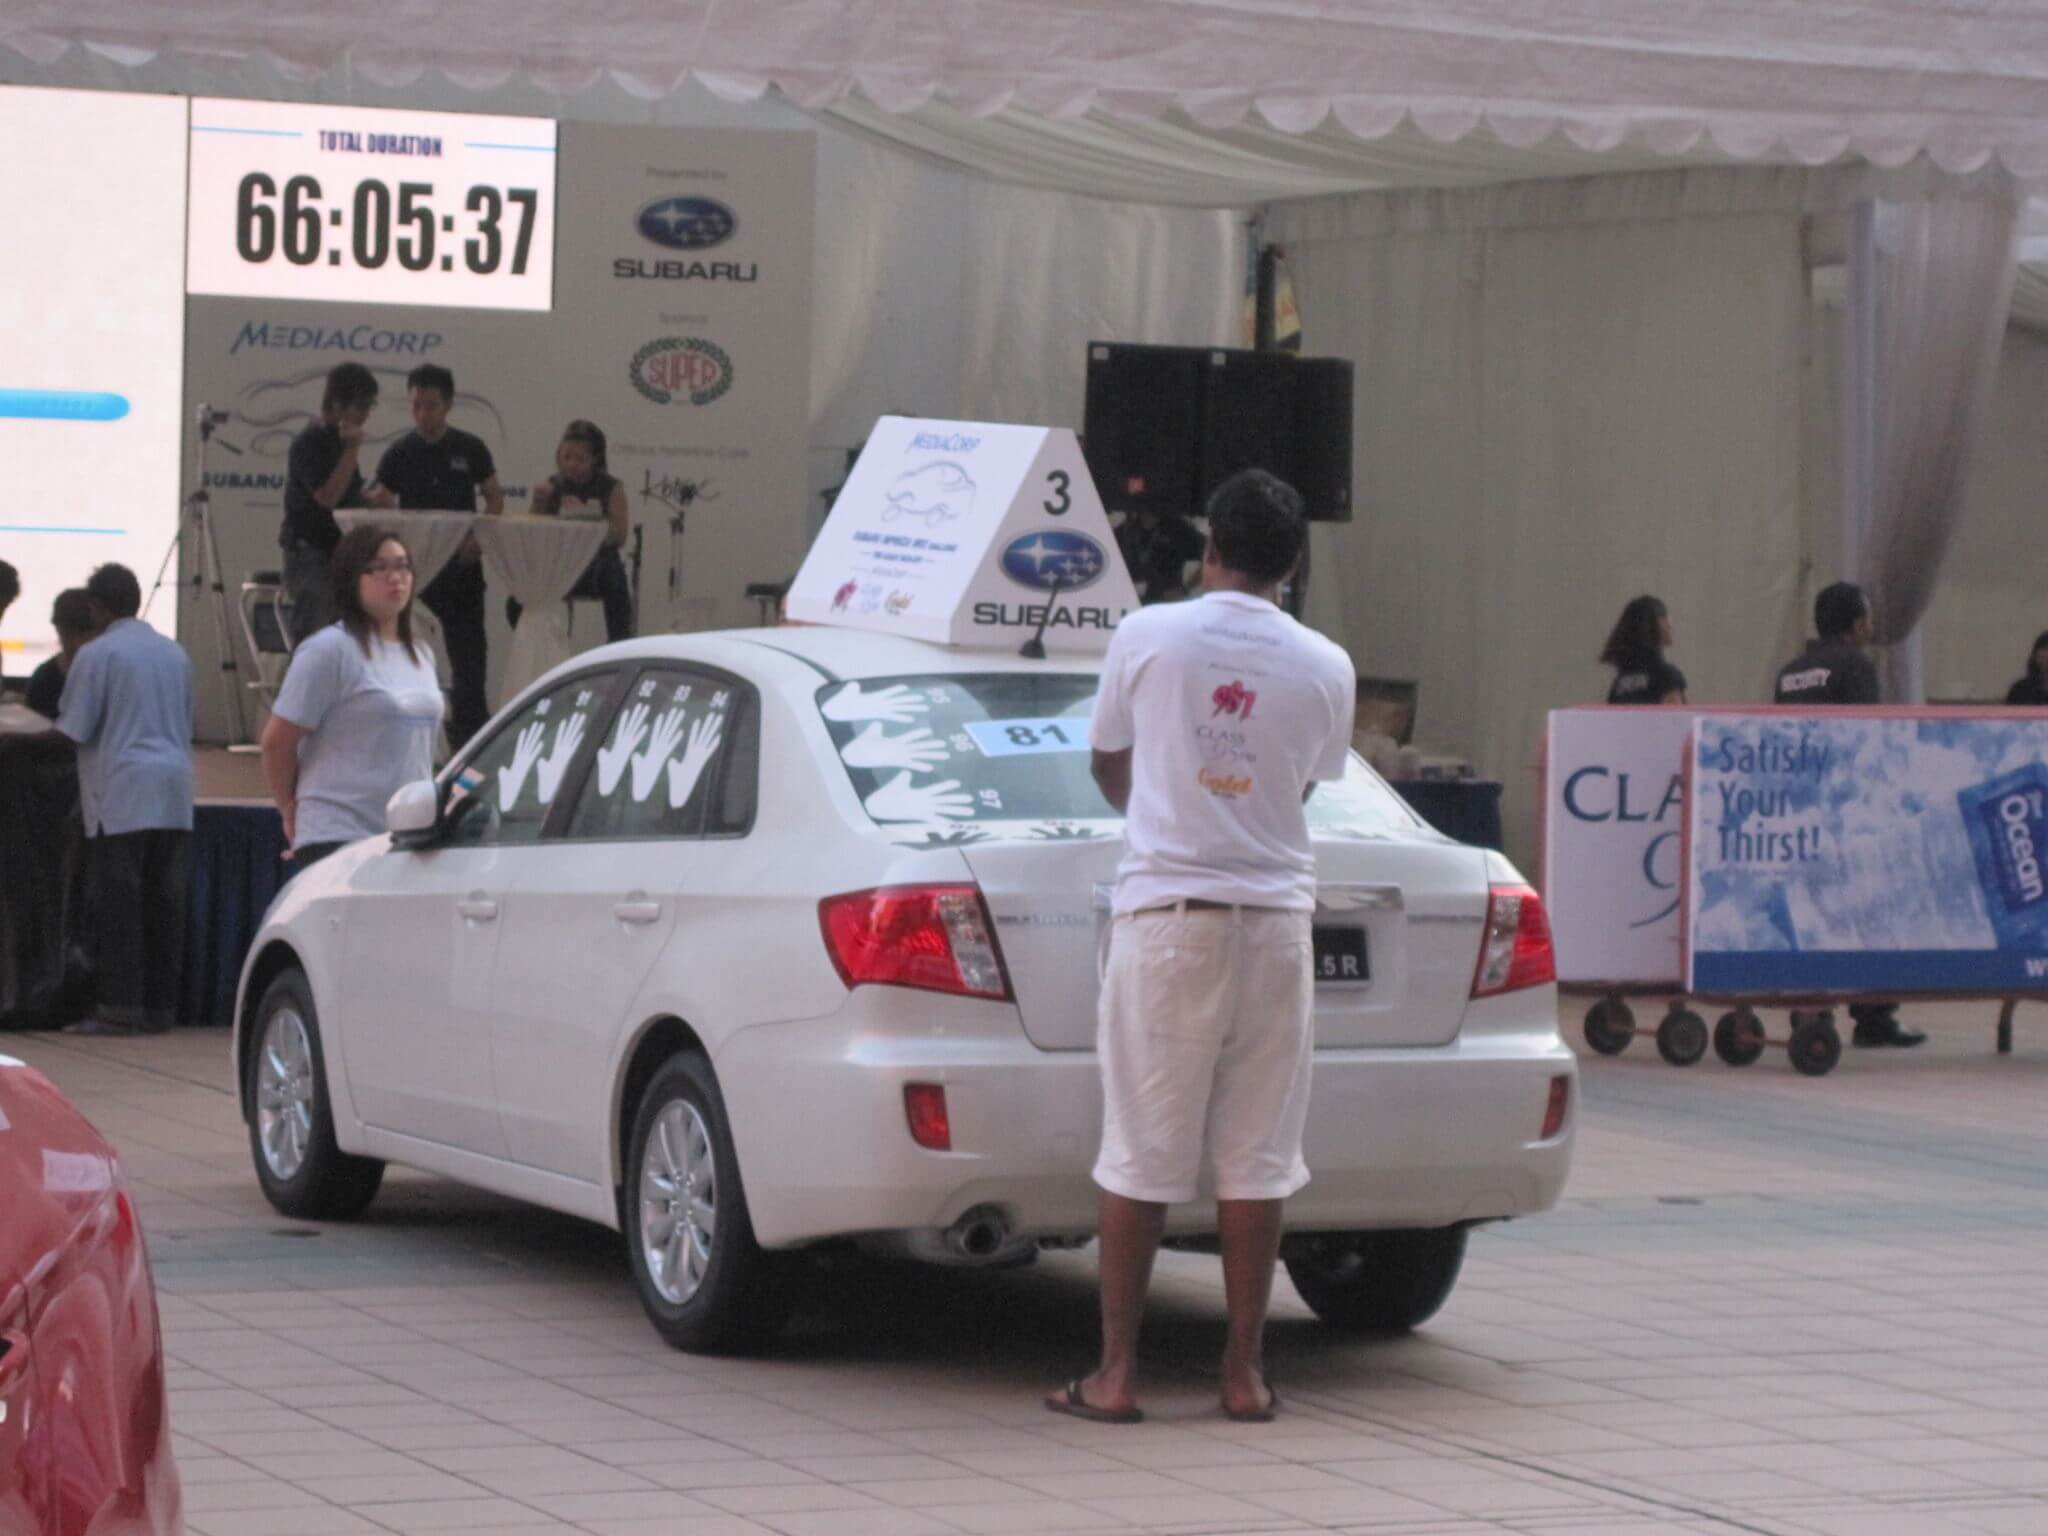 Man in white t-shirt and bermudas standing with his palm on a white car